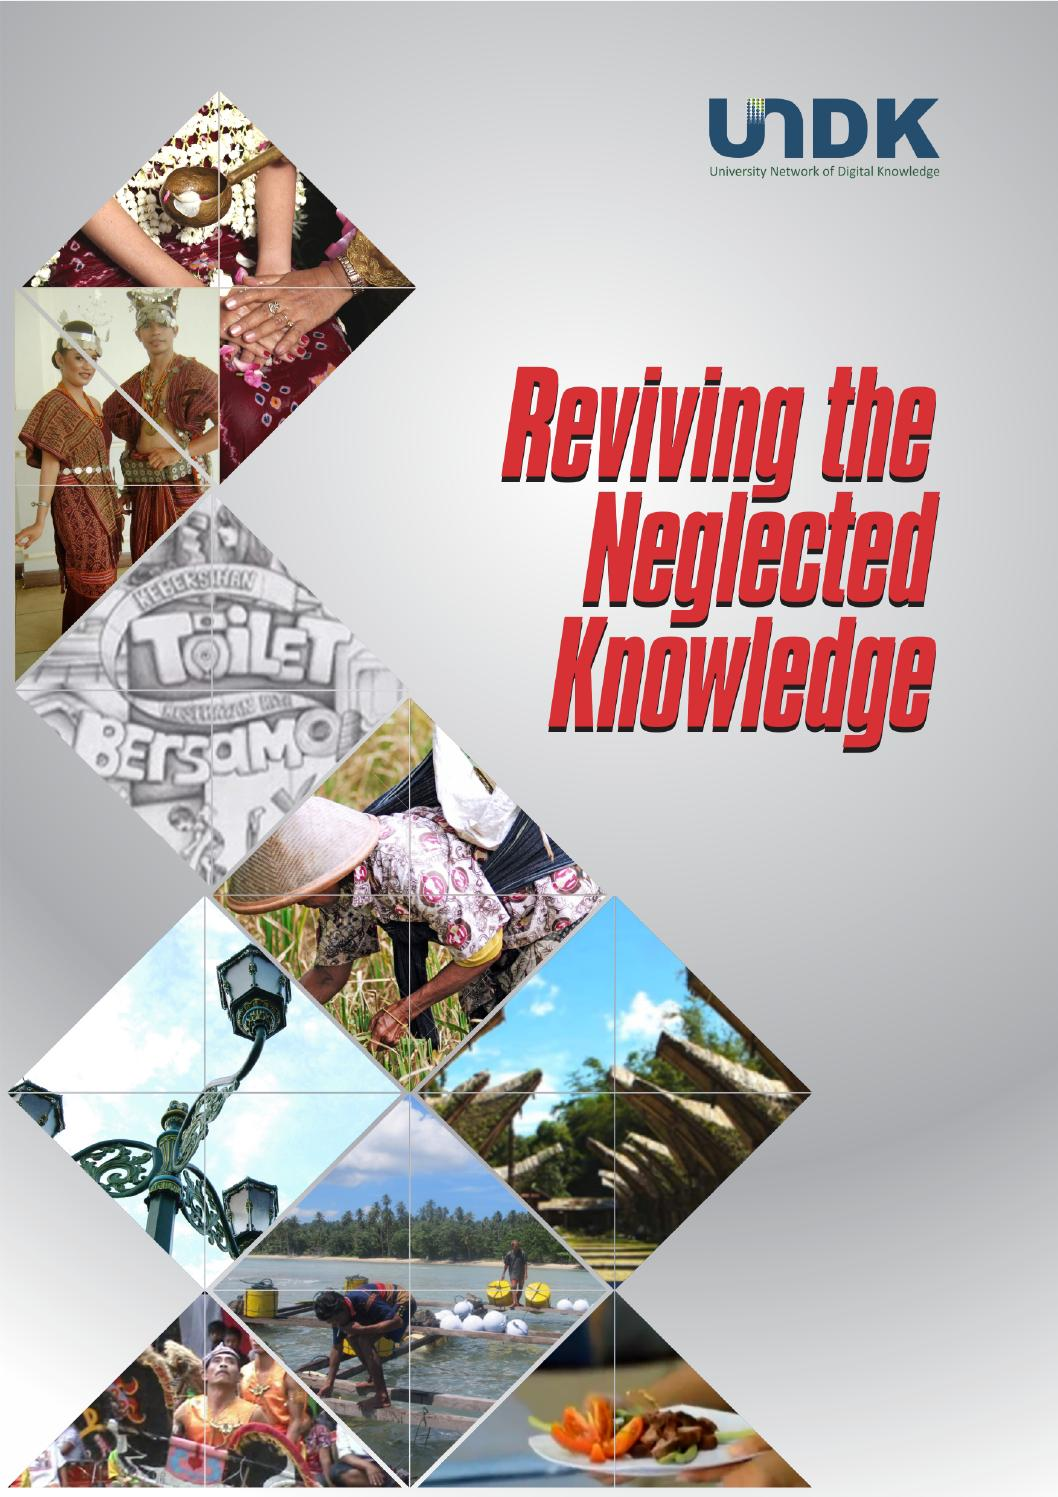 Reviving The Neglected Knowledge By Ebook UNDK Issuu